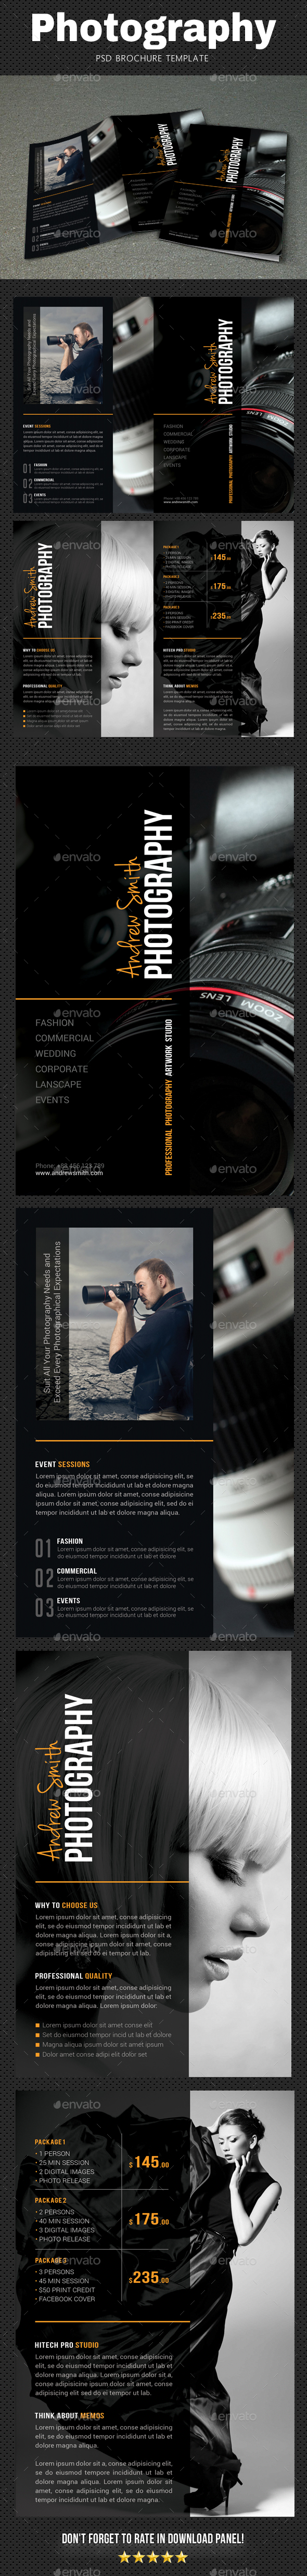 Photography Brochure 2 - Corporate Brochures